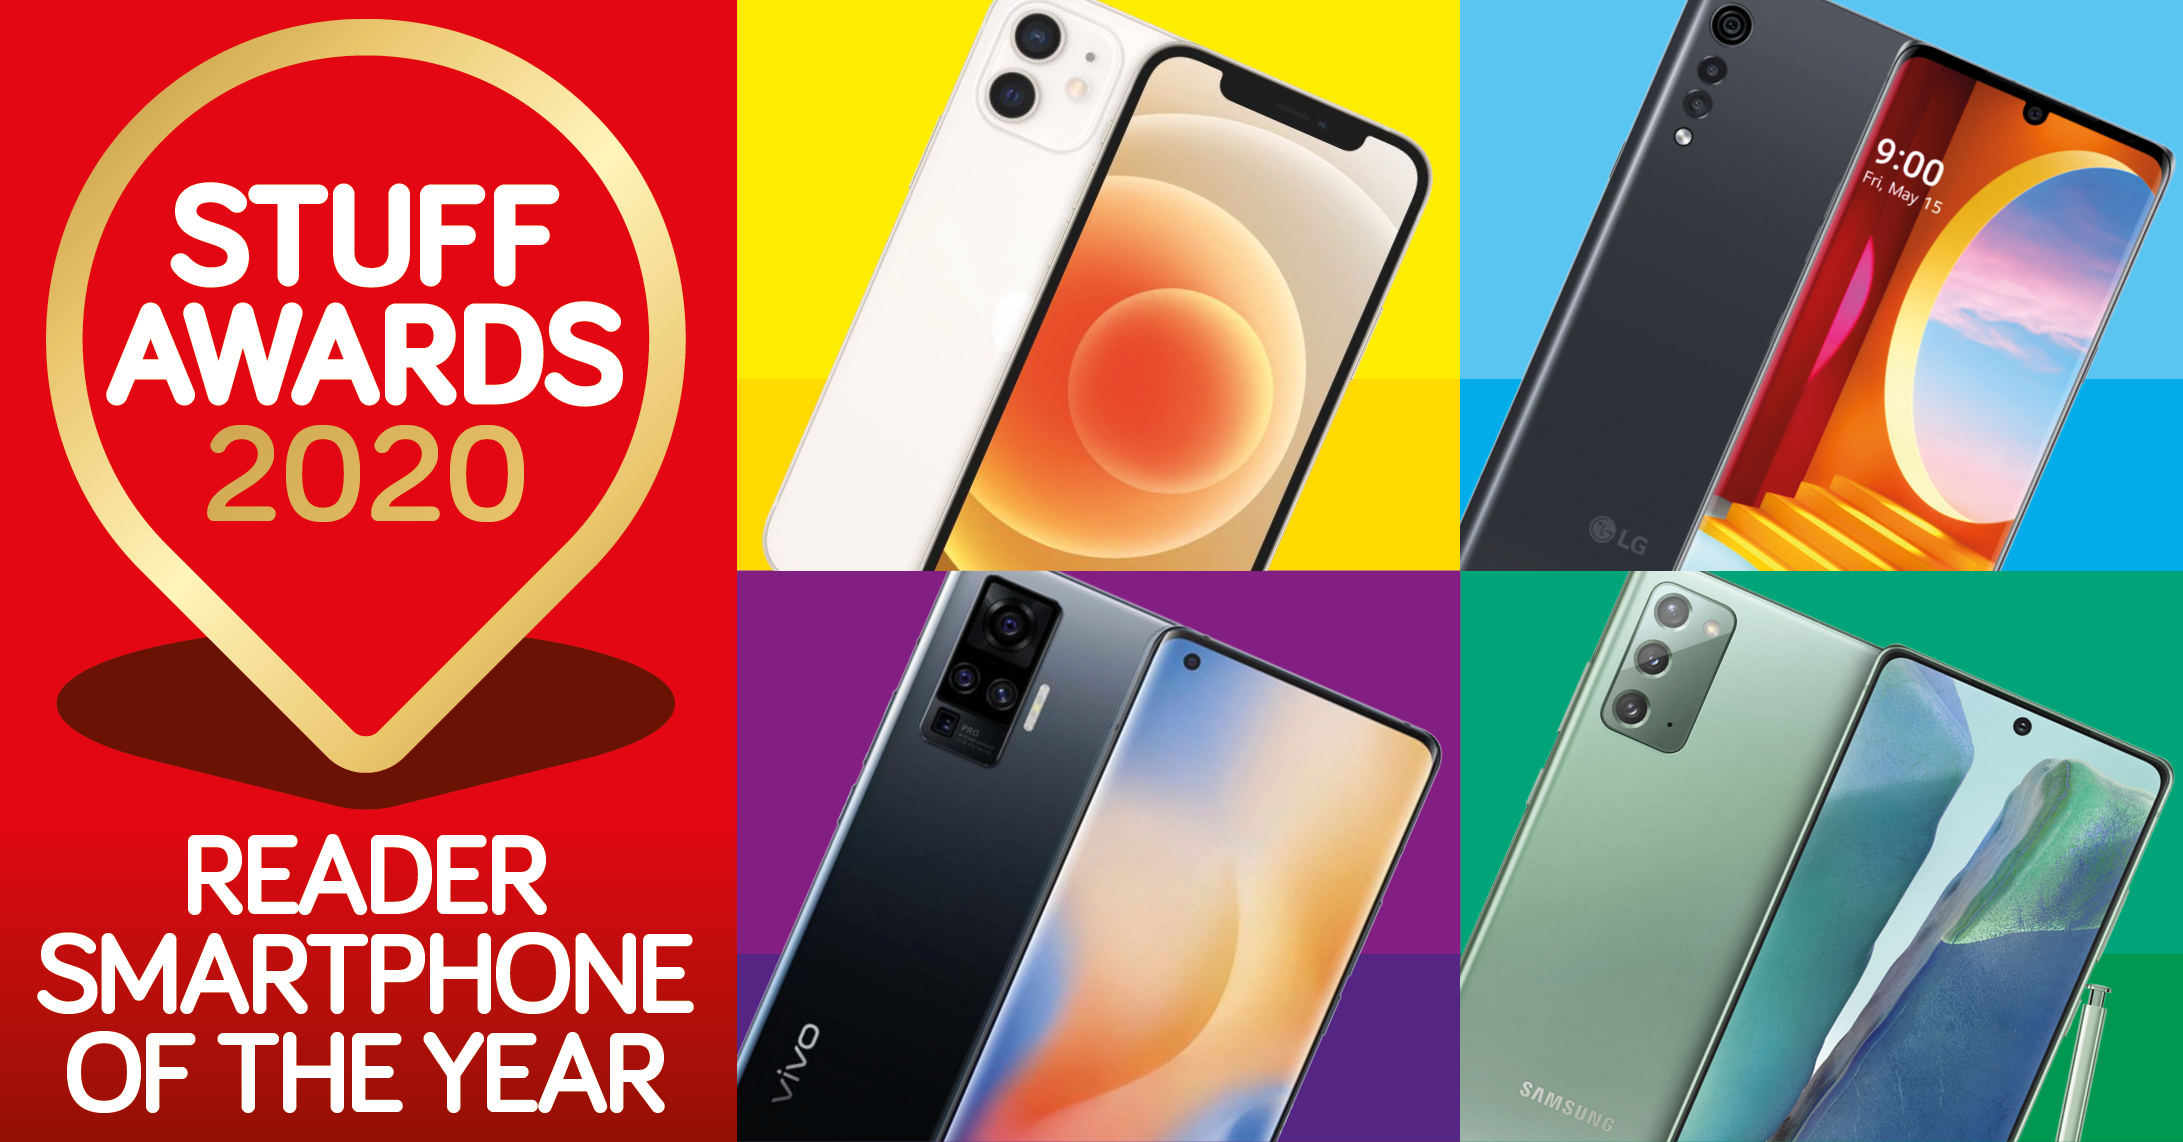 Reader Smartphone of the Year main